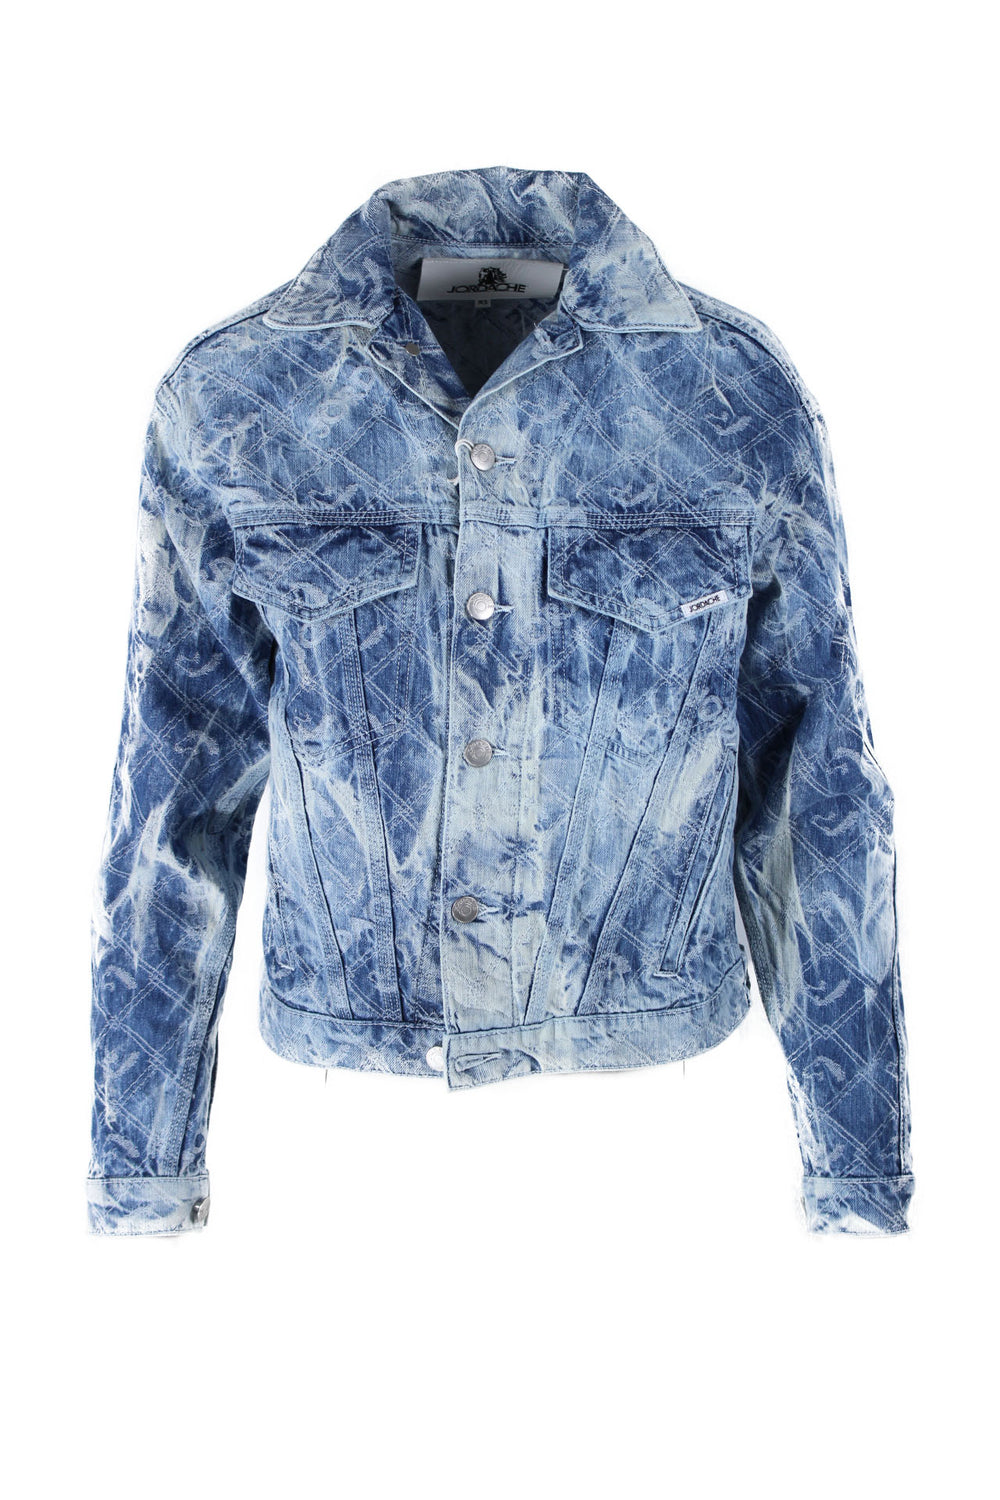 jordache acid wash denim jacket.